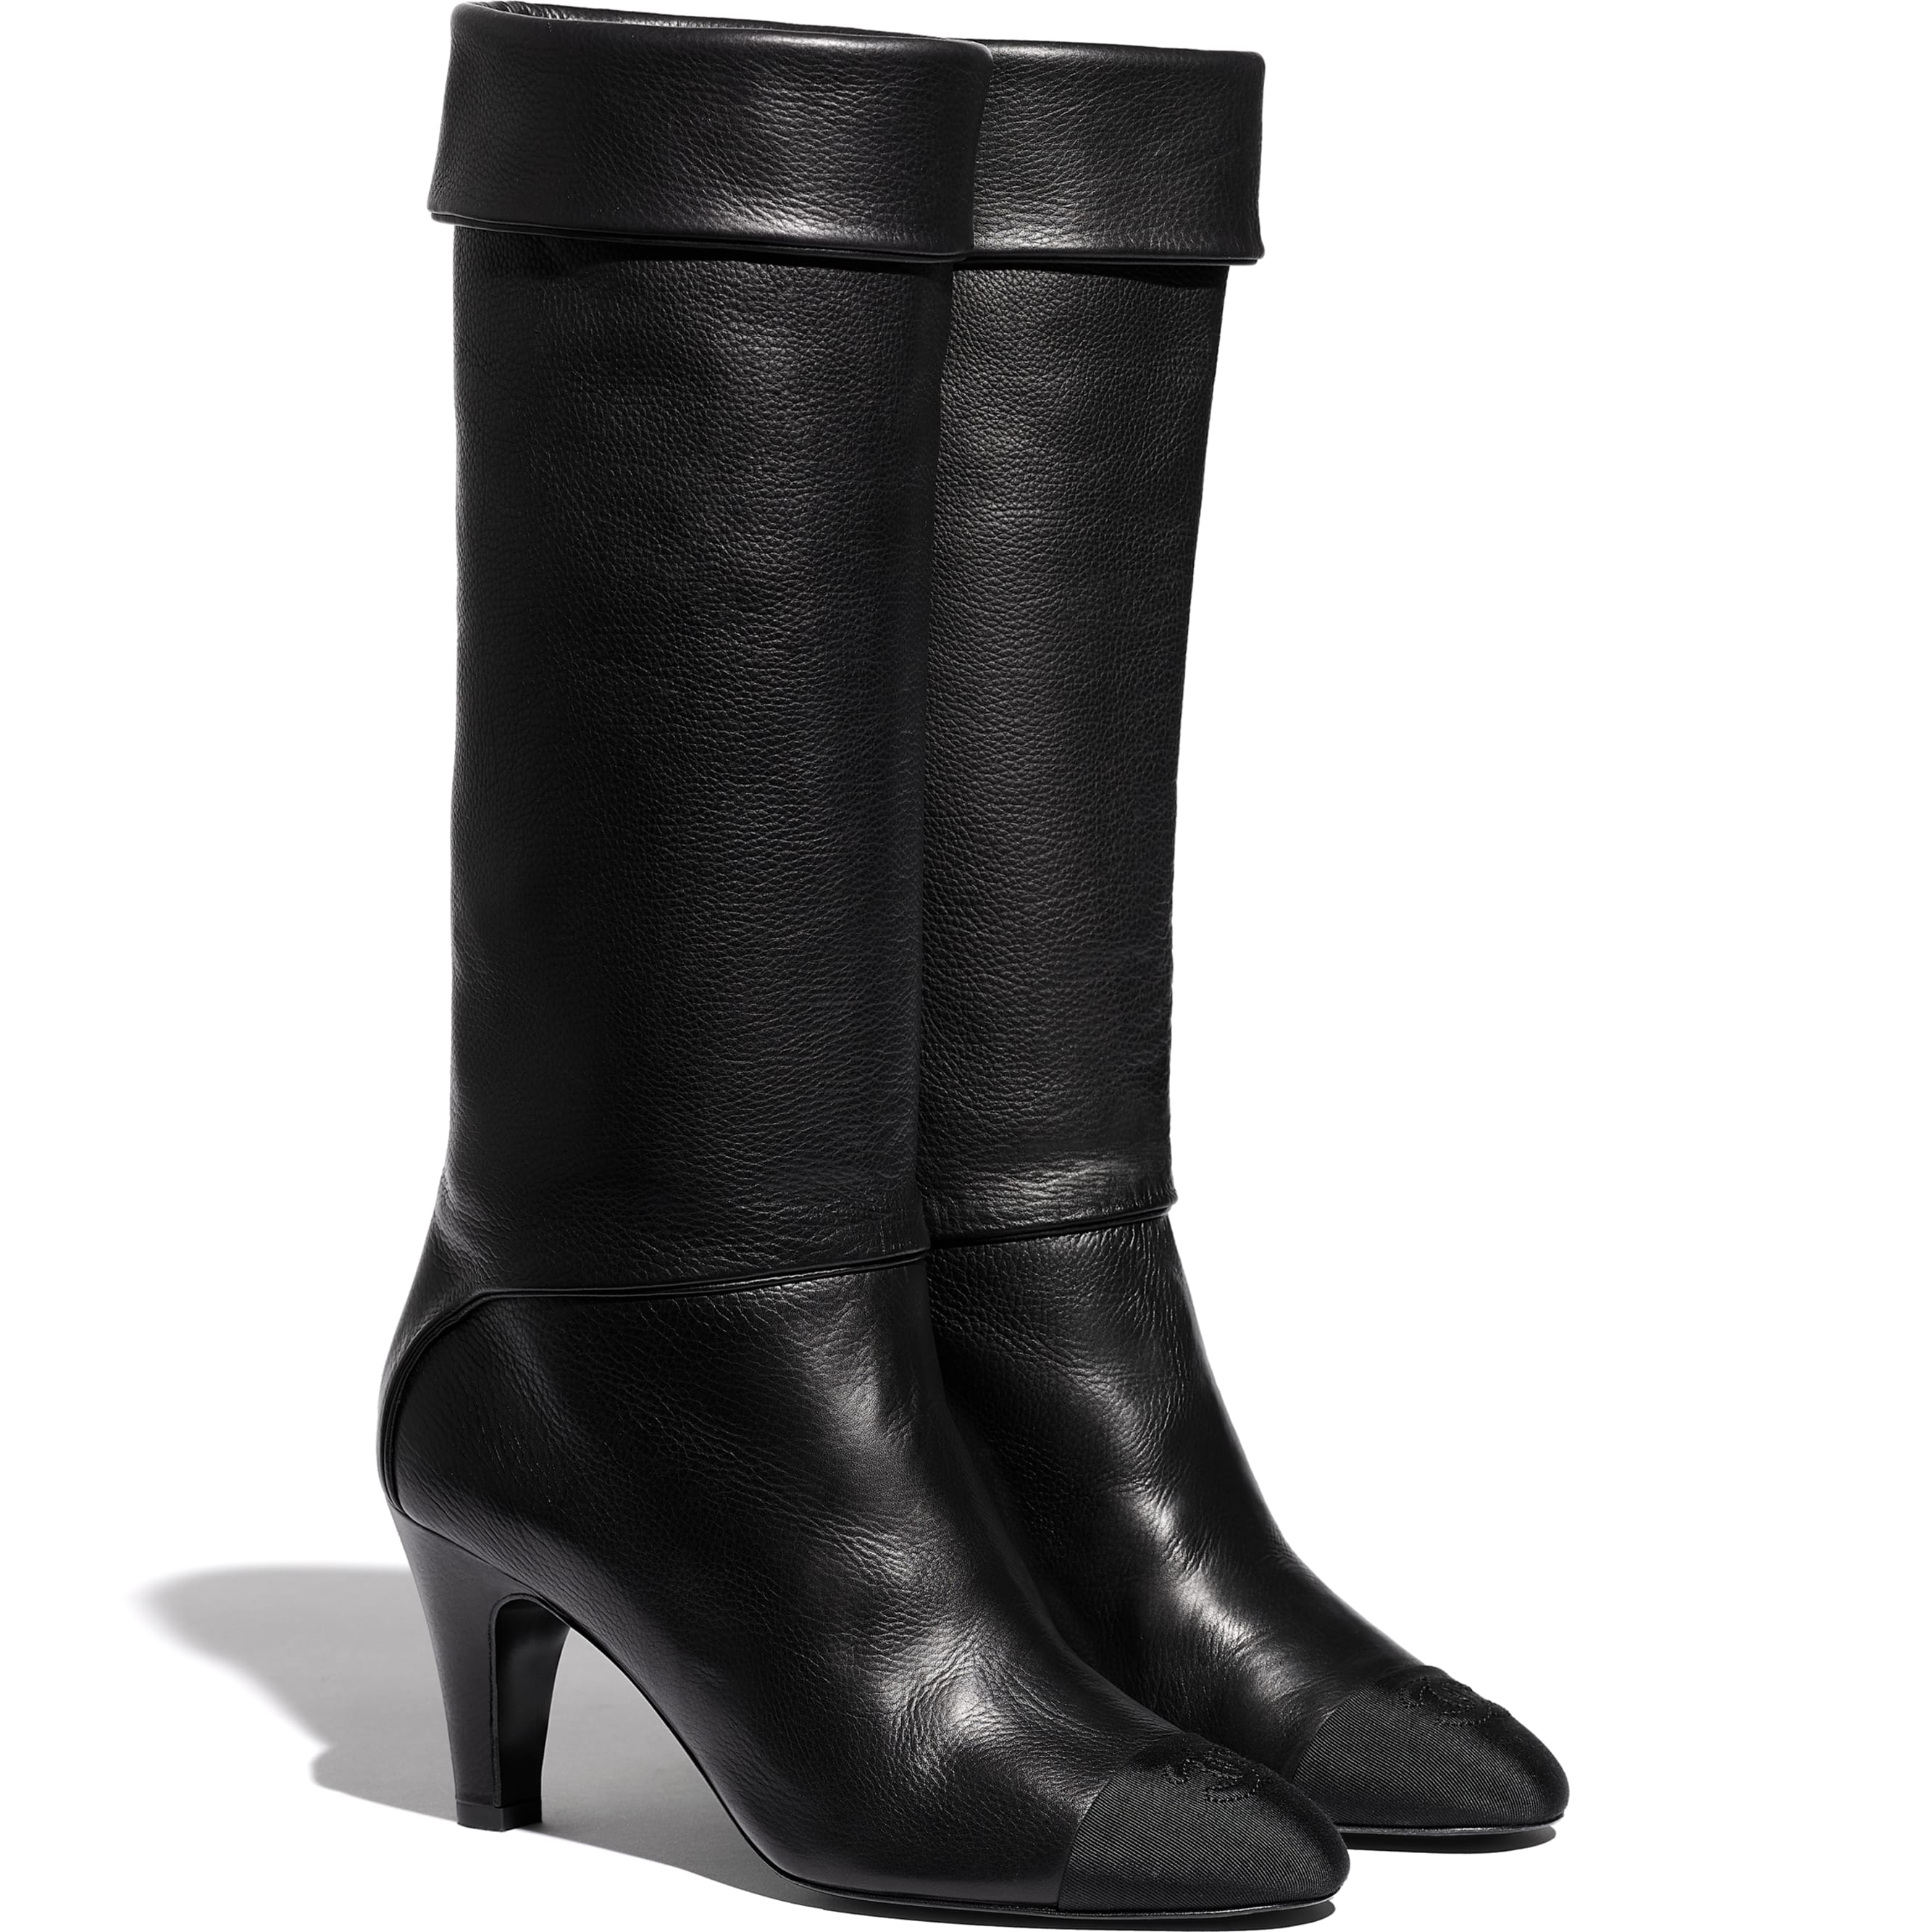 High Boots - Black - Calfskin & Grosgrain - CHANEL - Alternative view - see standard sized version